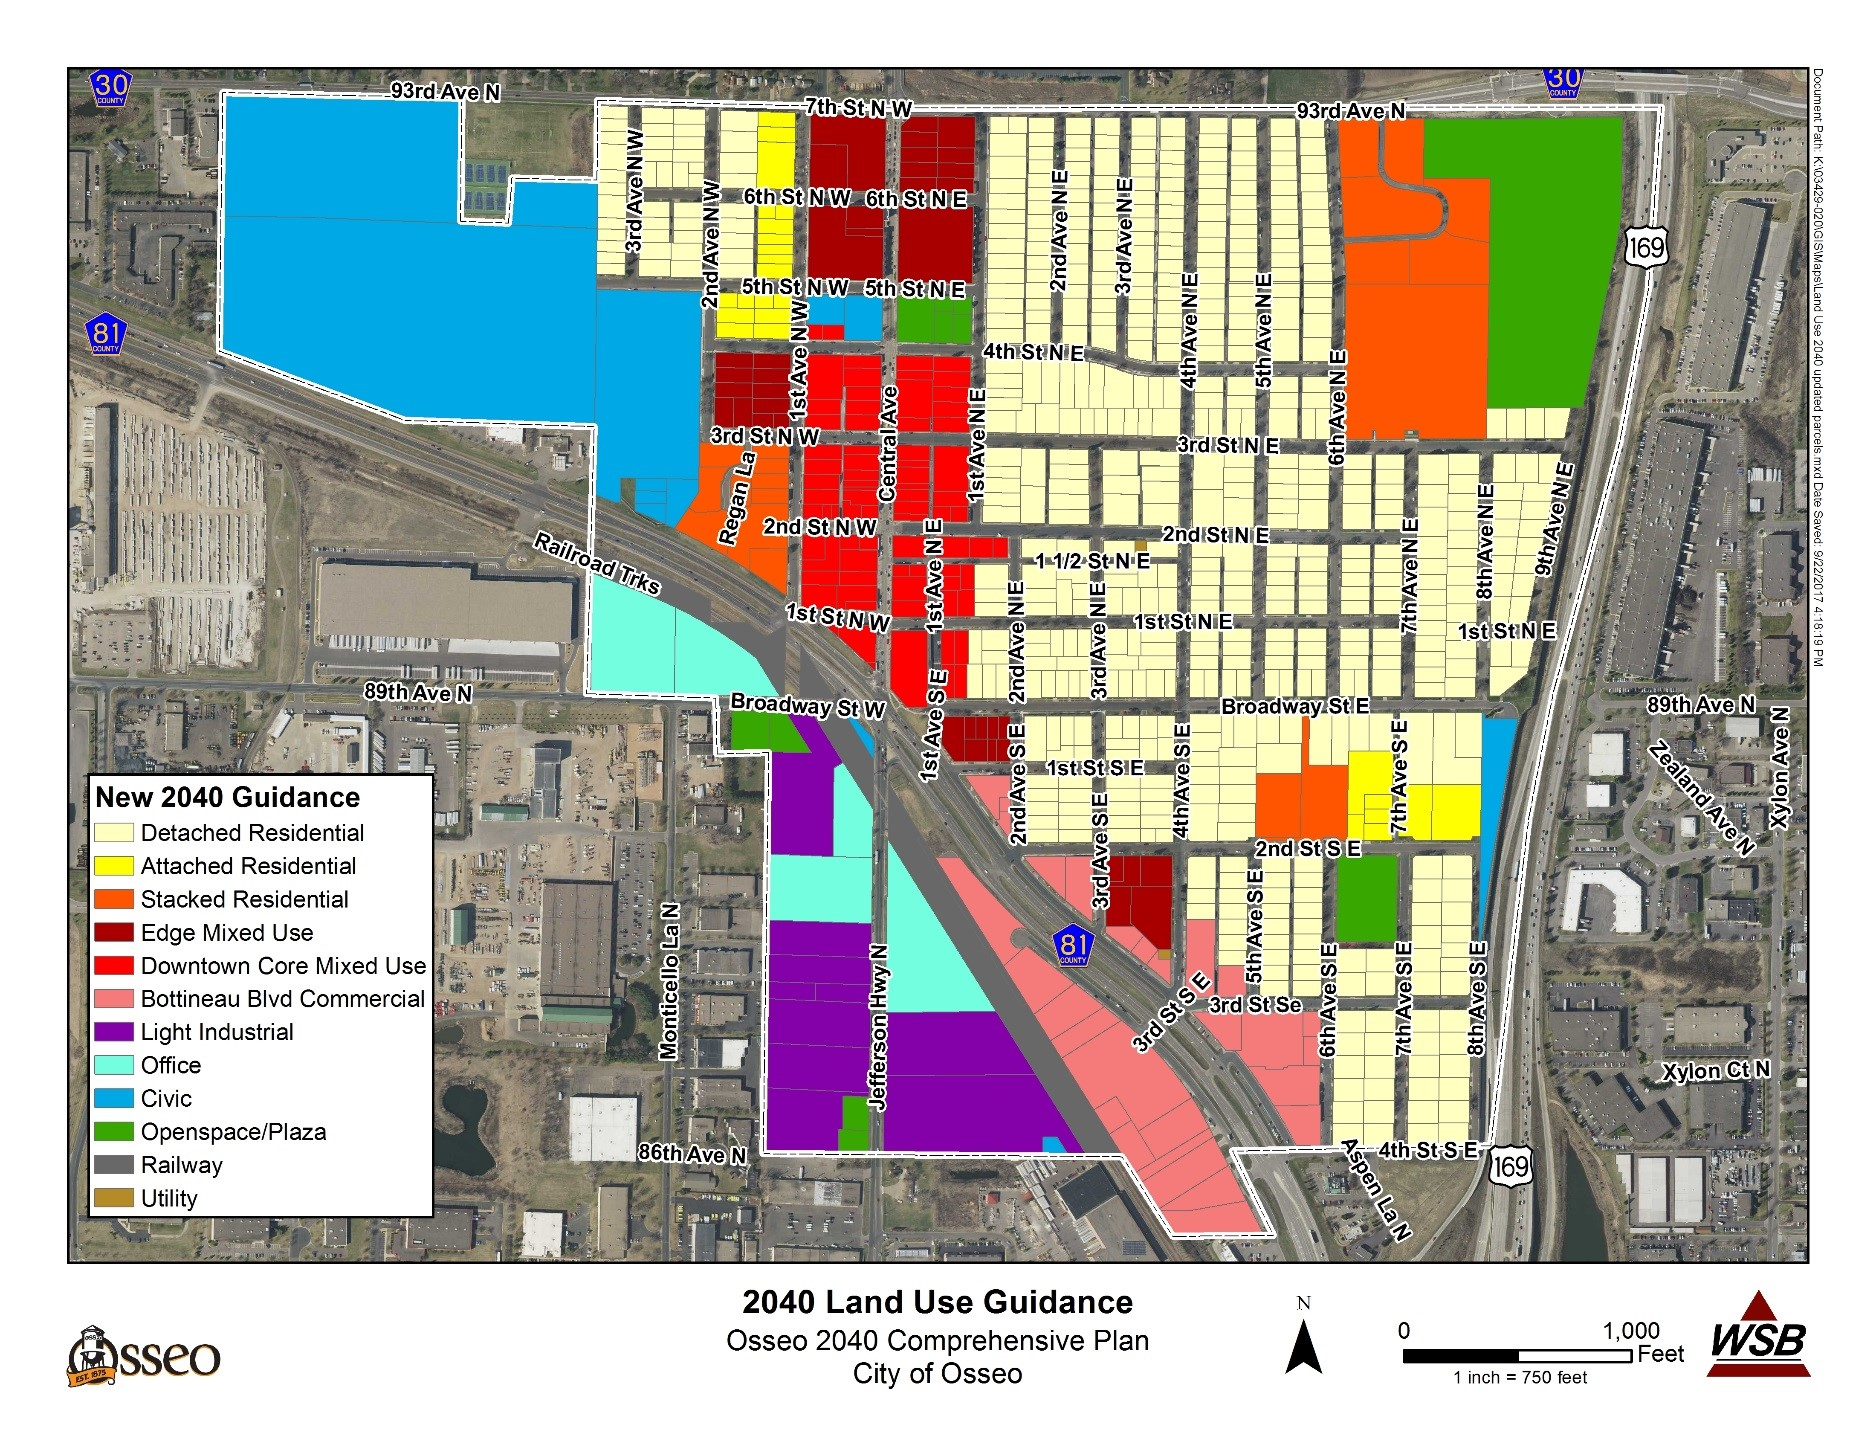 2040 Land Use Guidance Map